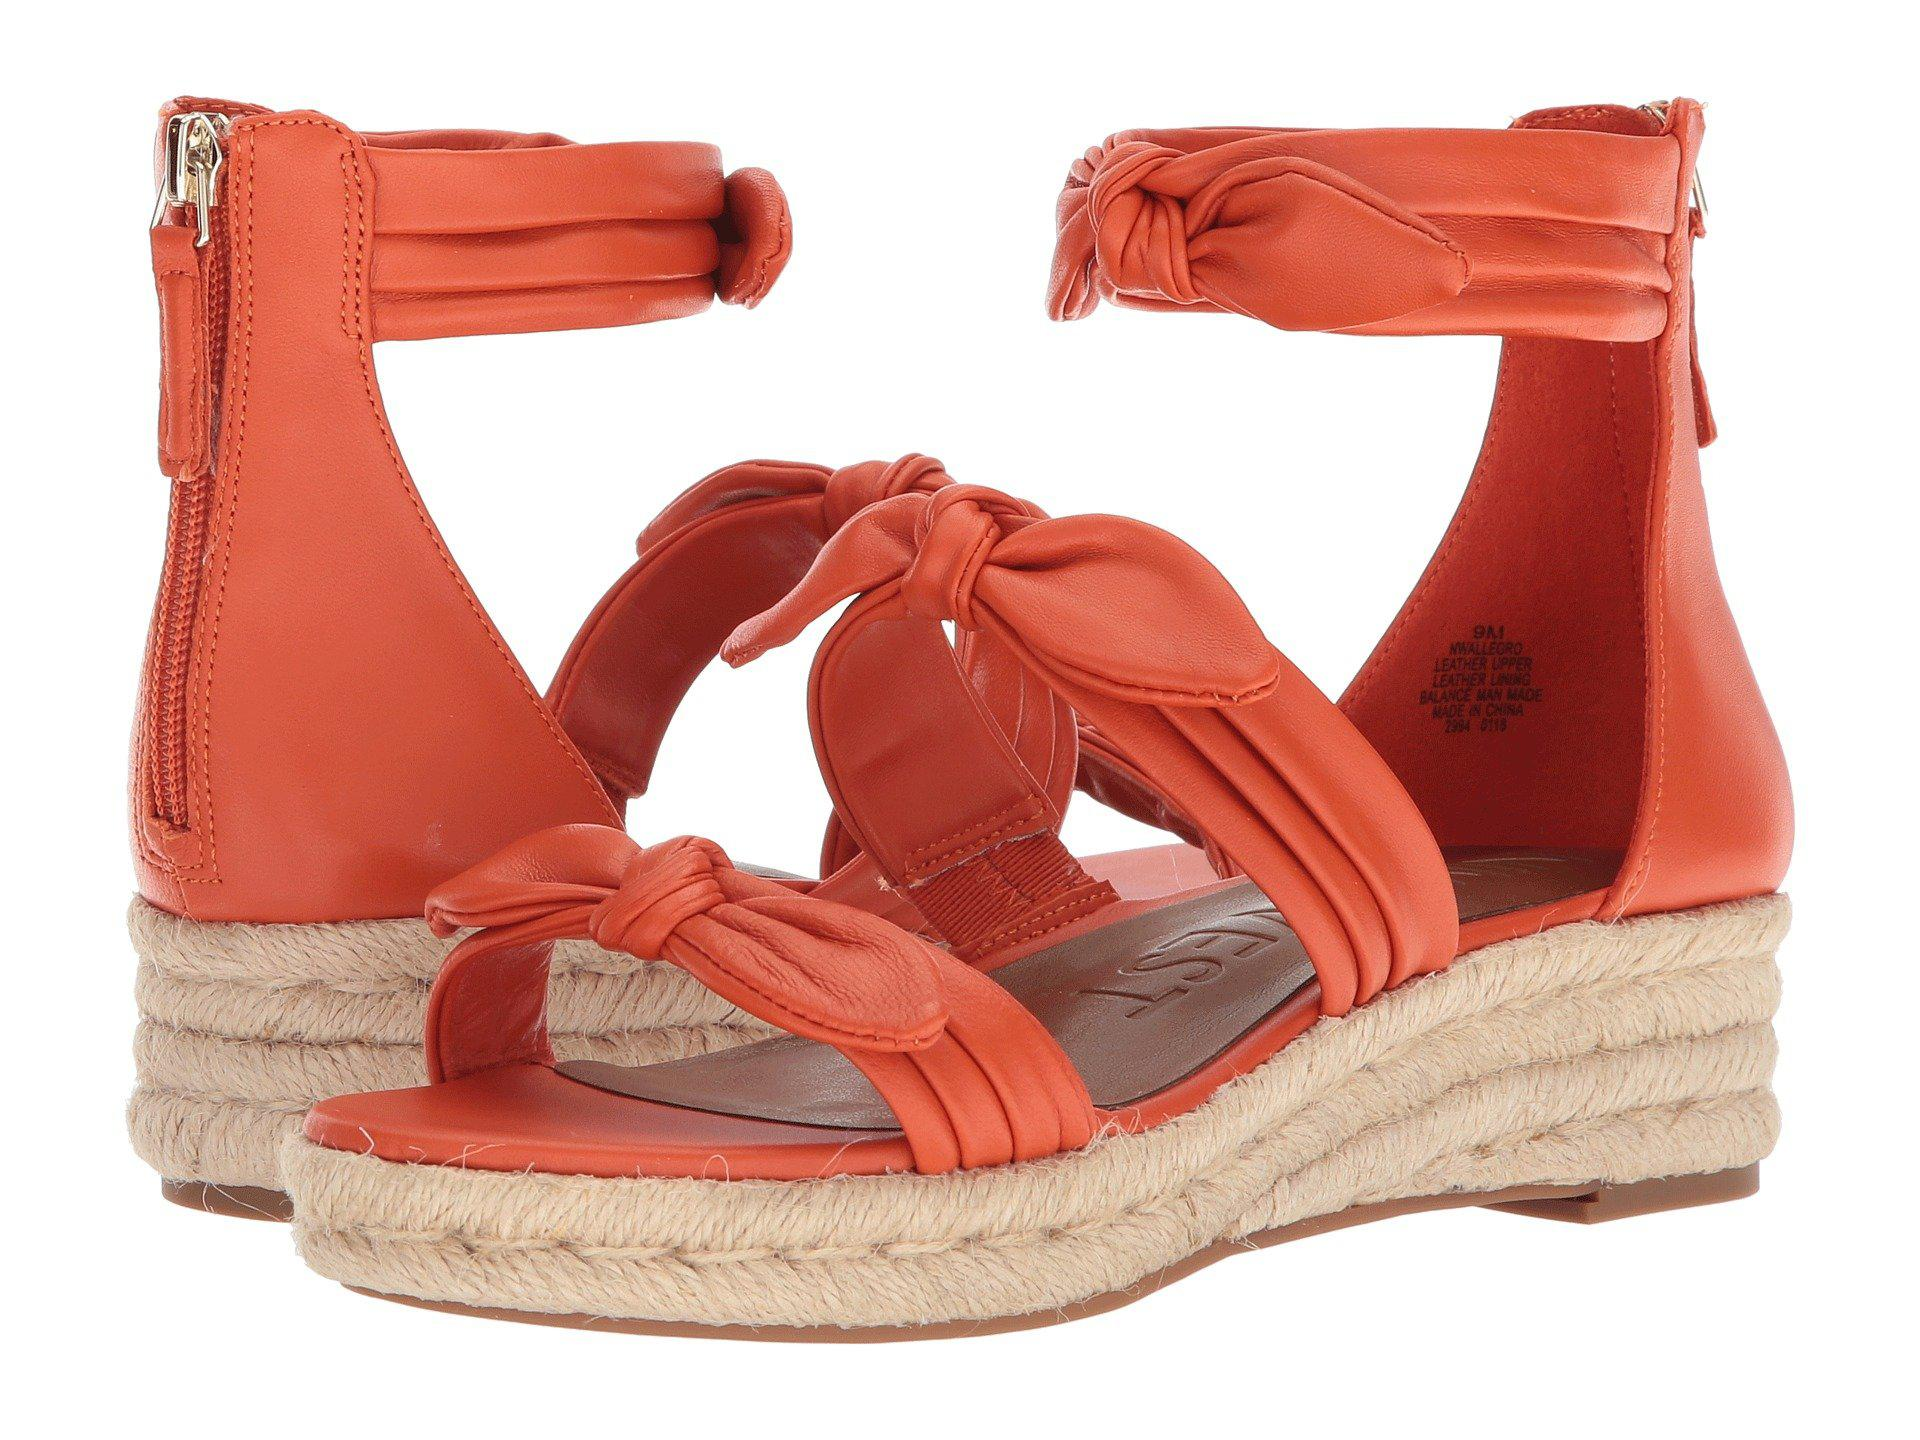 500f9a1123 Nine West Allegro Leather Wedge Sandal - Lyst